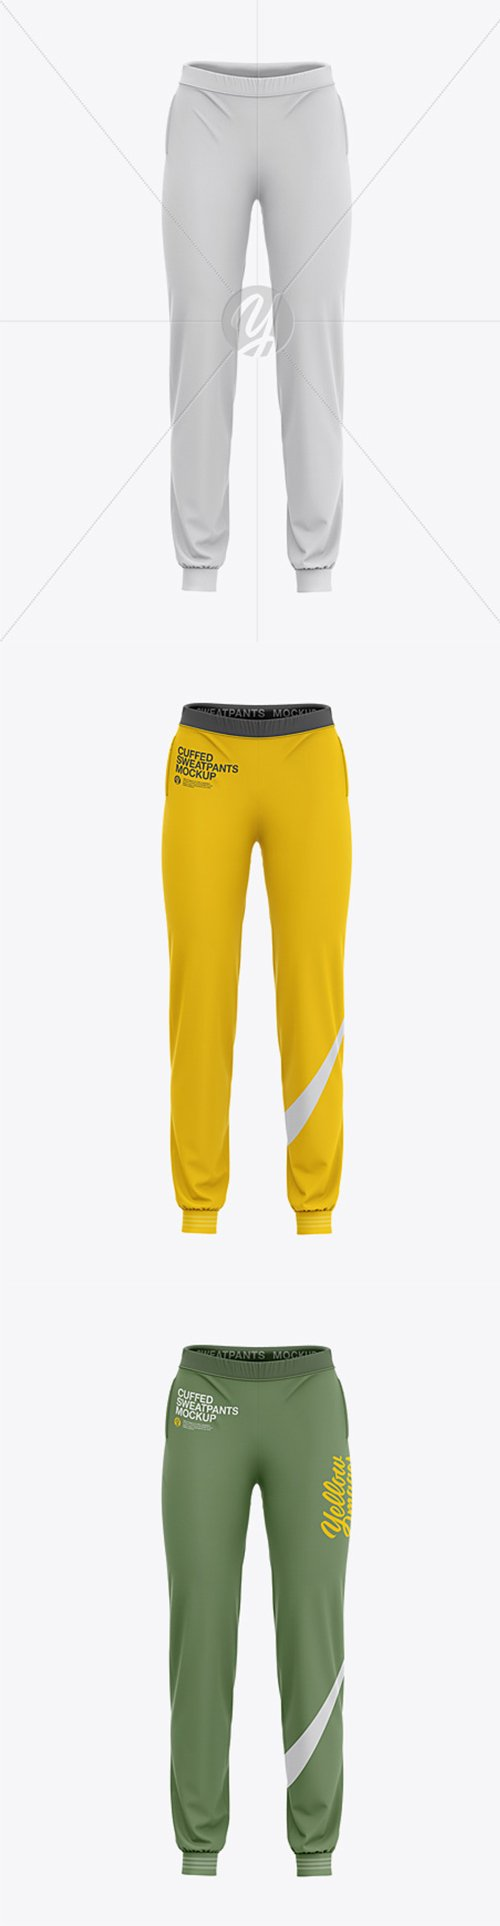 Womens Cuffed Sweatpants Mockup - Front View 34960 TIF